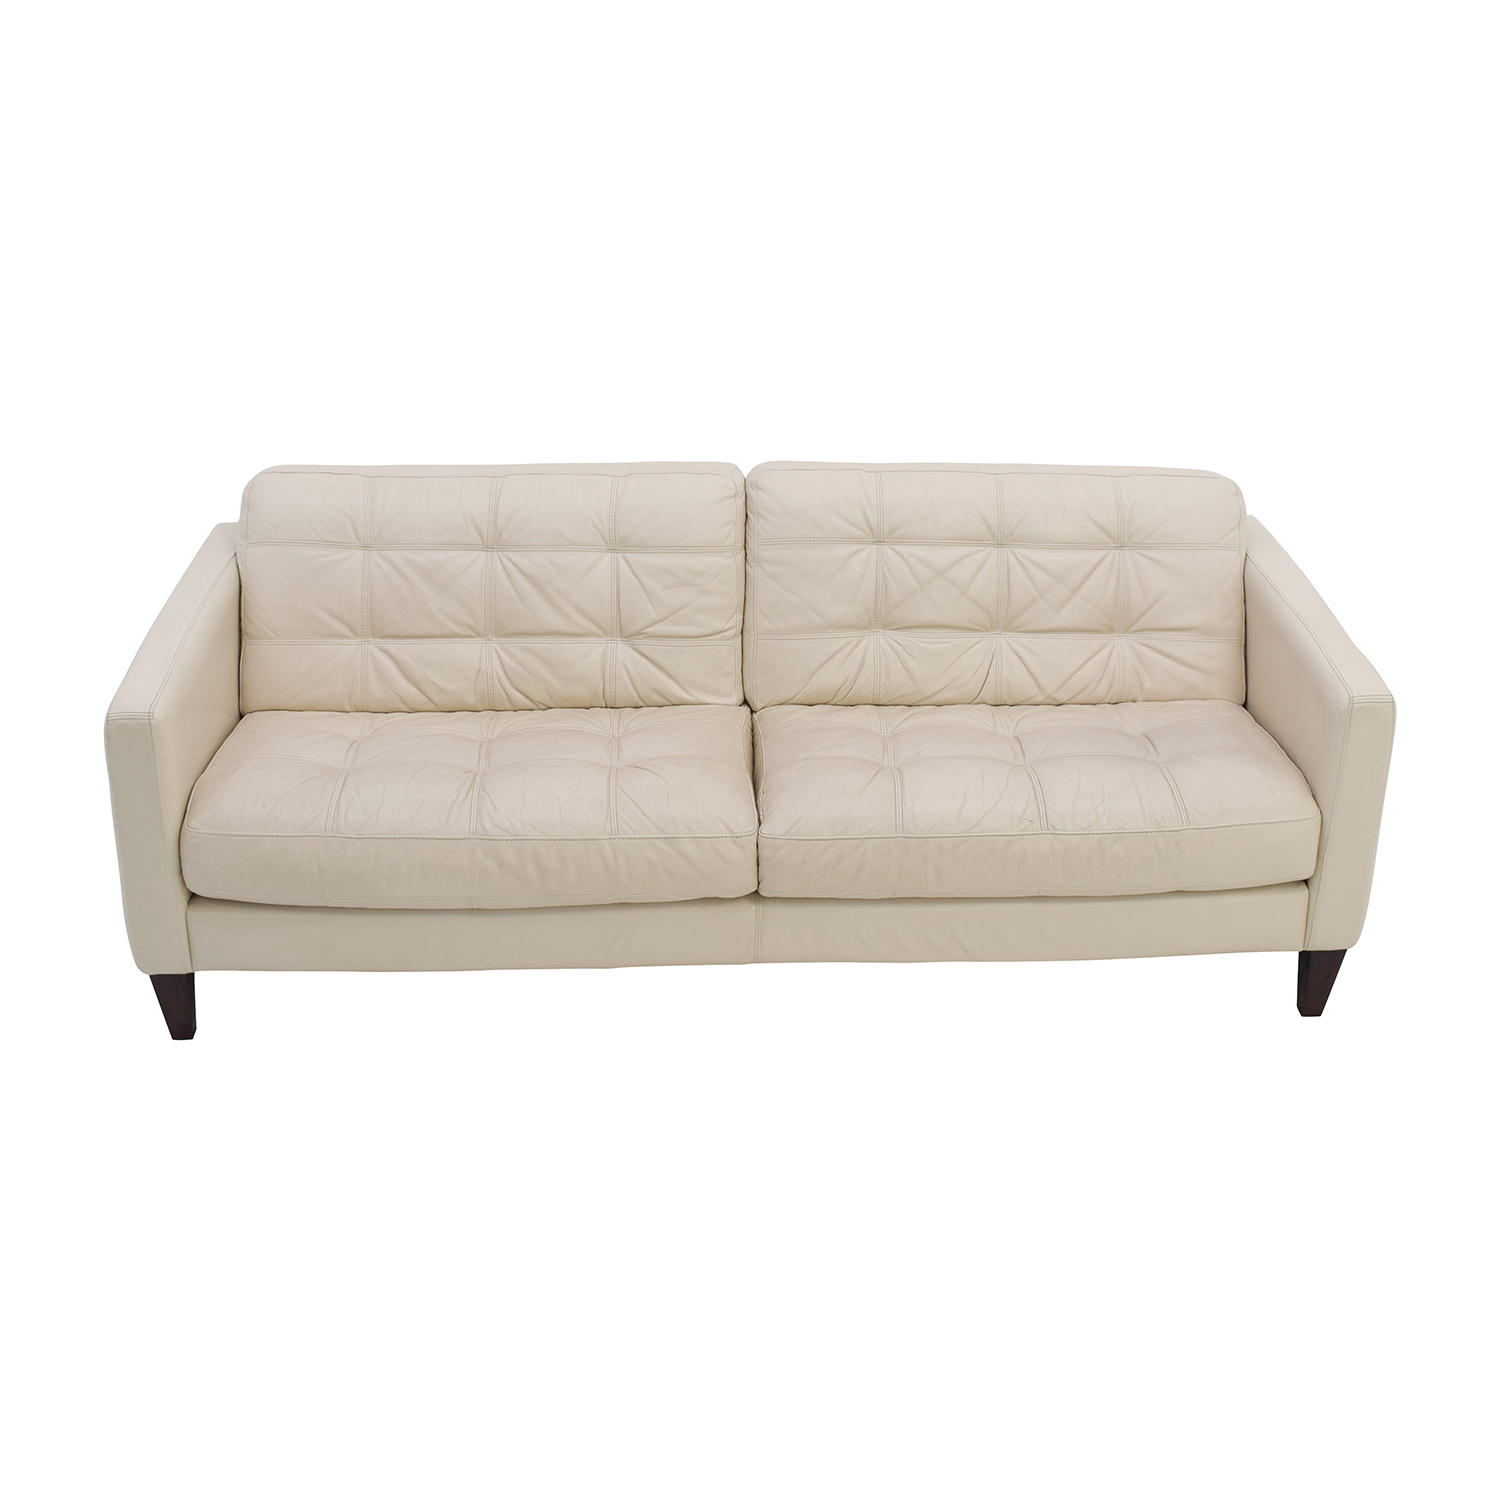 buy Macys Milan Pearl Leather Sofa Macys Sofas